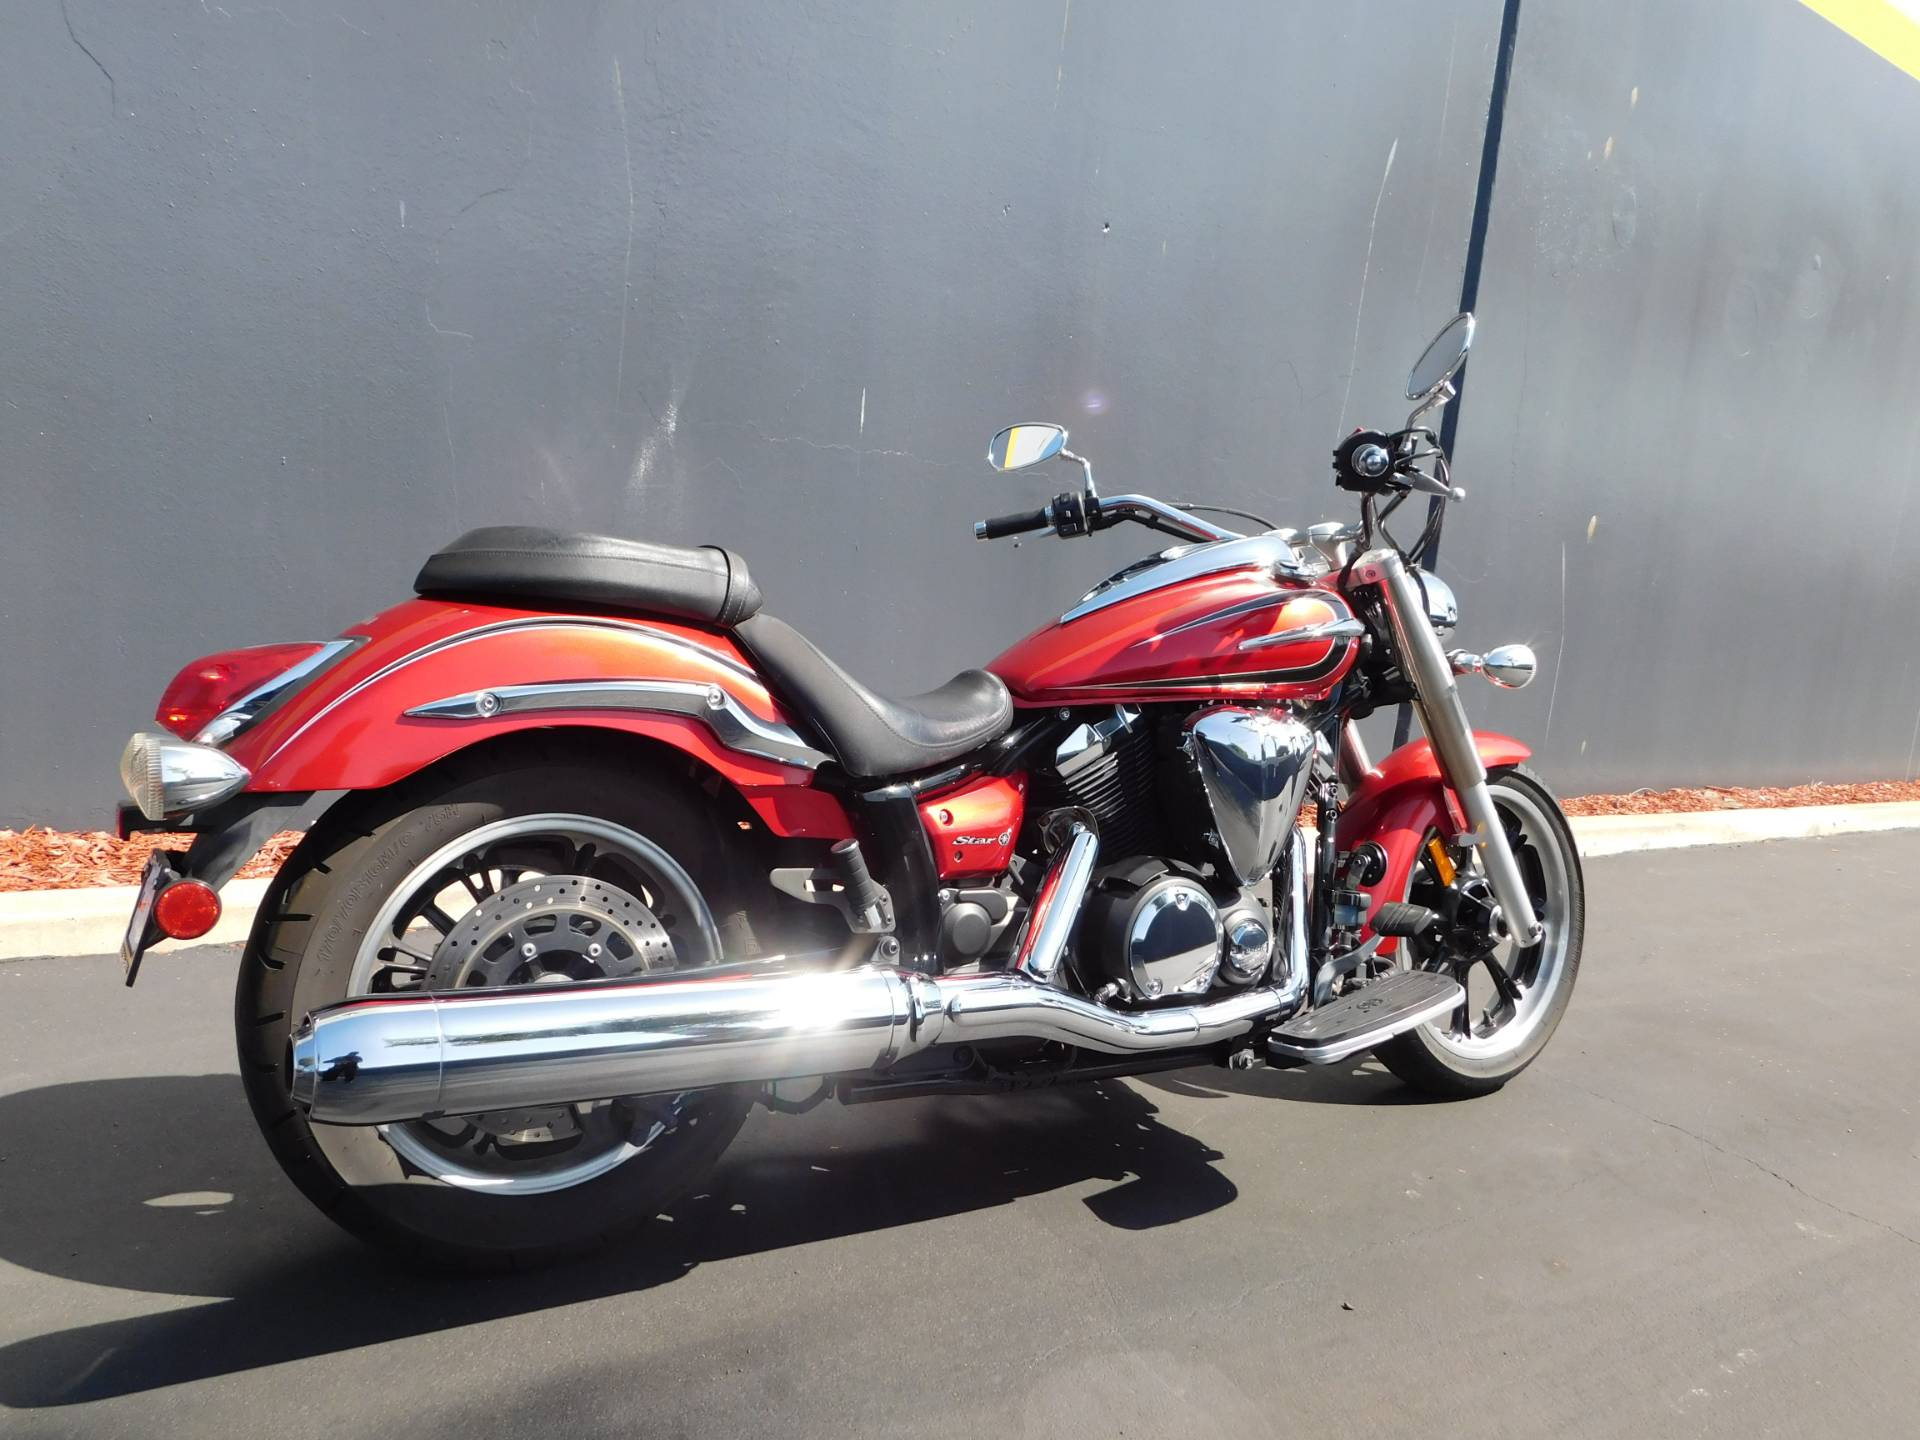 2012 Yamaha V Star 950 in Chula Vista, California - Photo 2